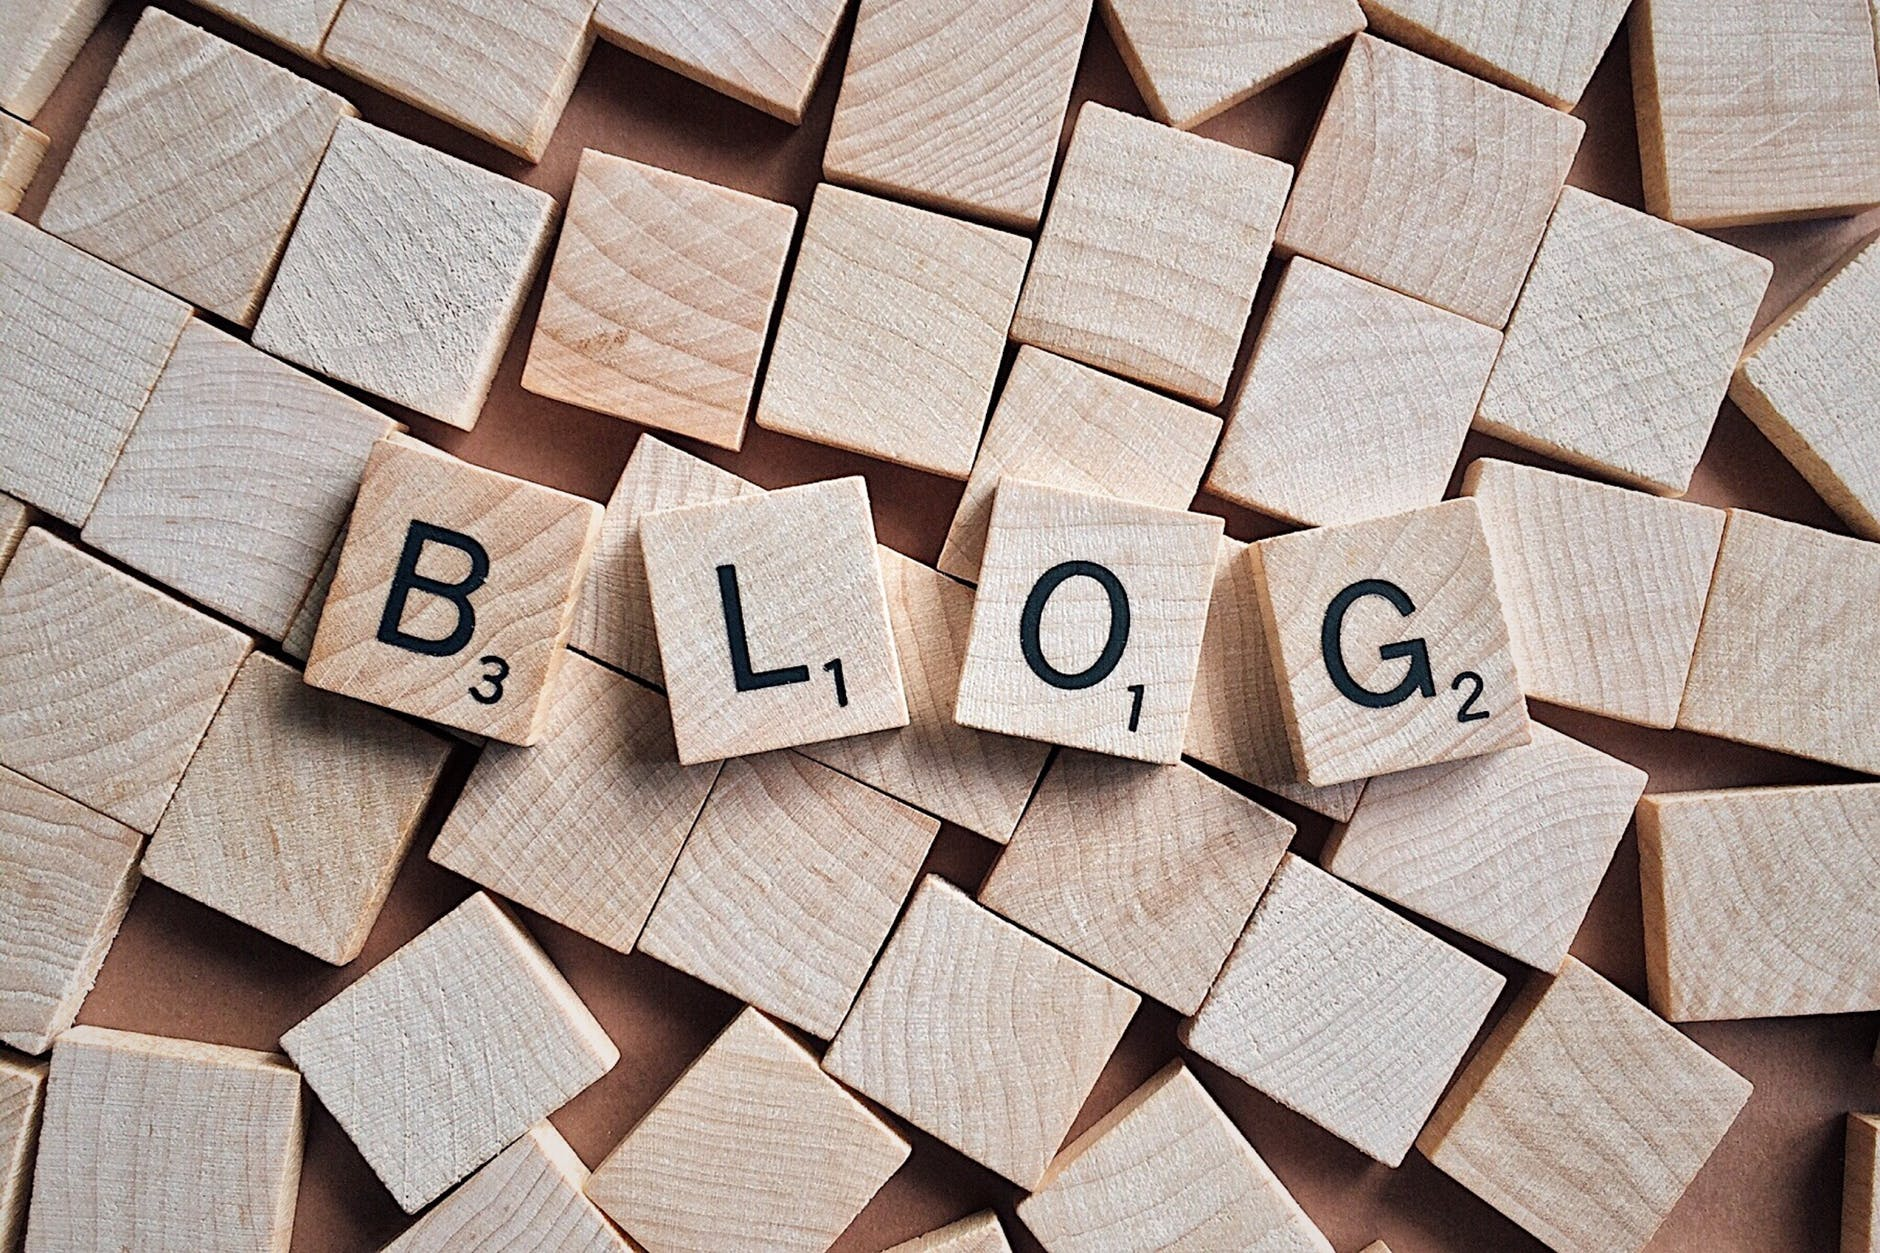 Blogging Insights #46 – The Value Of Comments